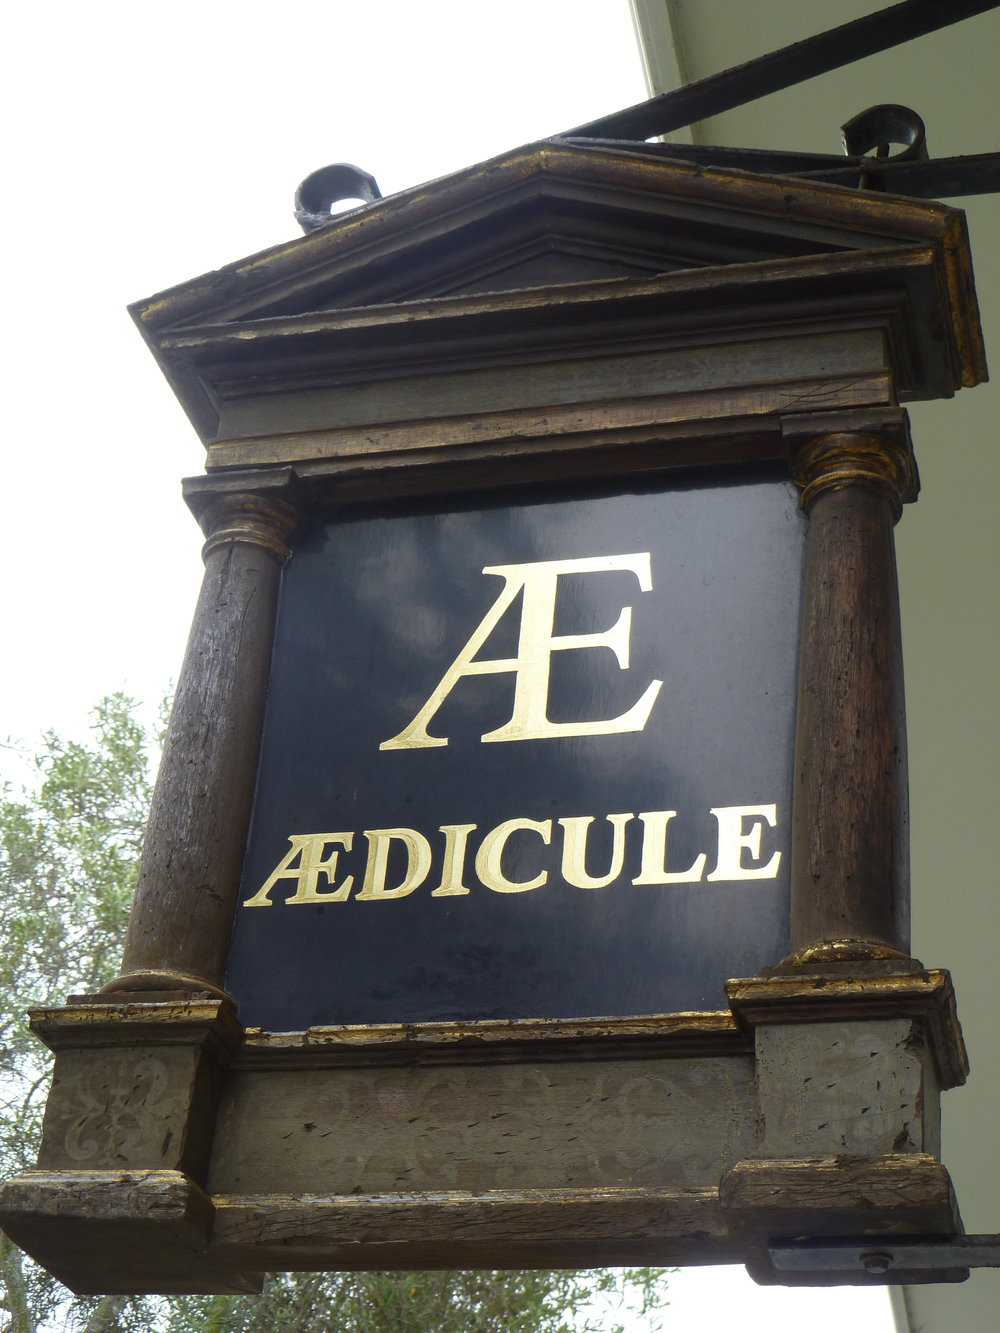 WINDOW-aedicule-projecting-sign_5006784182_o.jpg